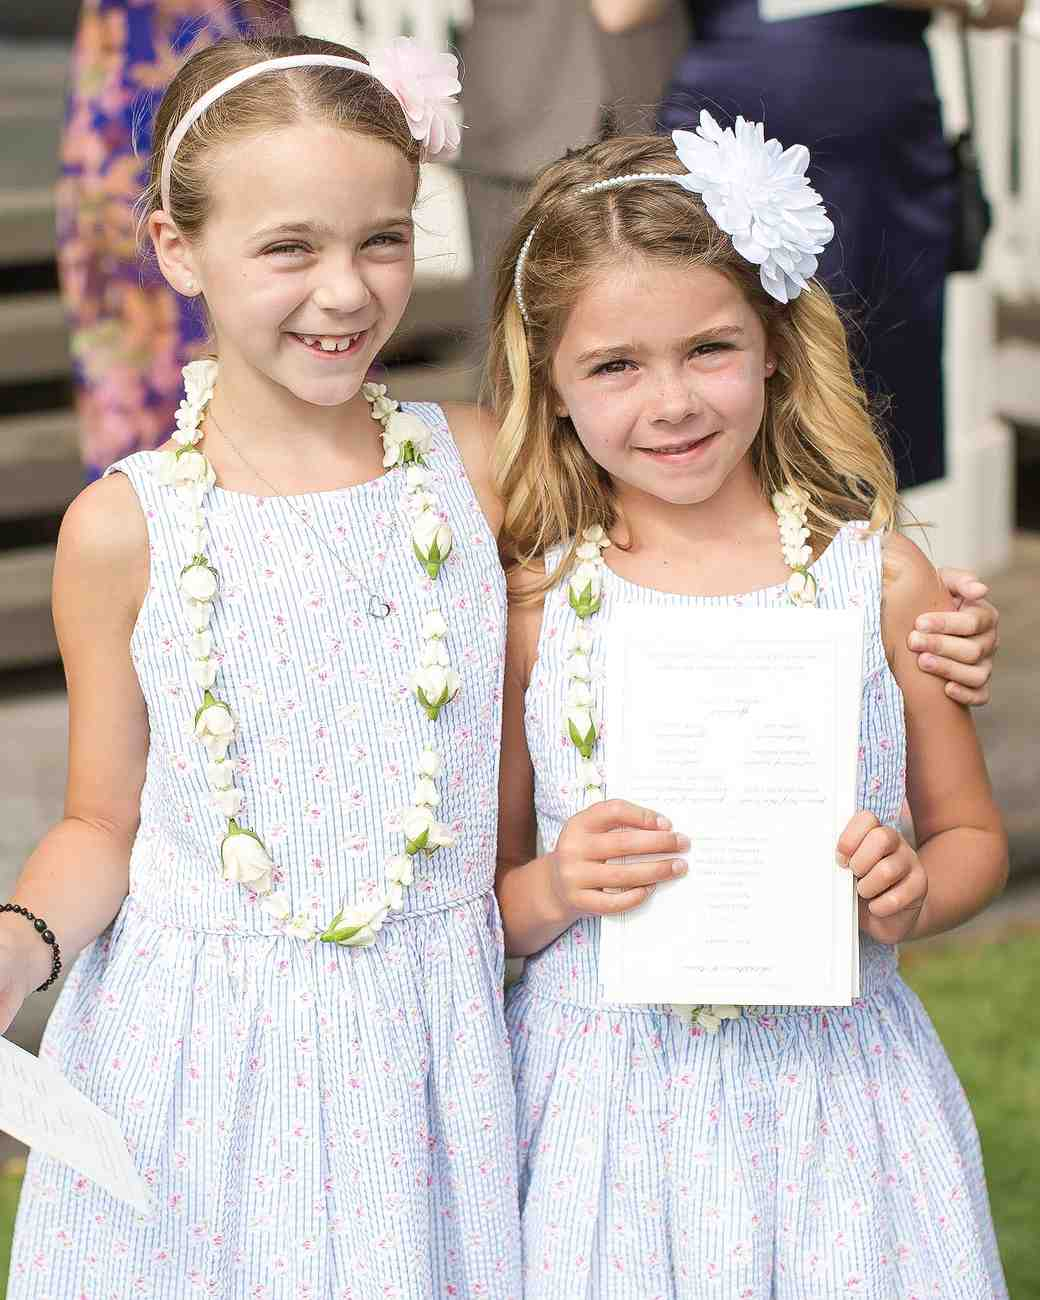 christen-tim-wedding-flowergirls-21561-6143924-0816.jpg